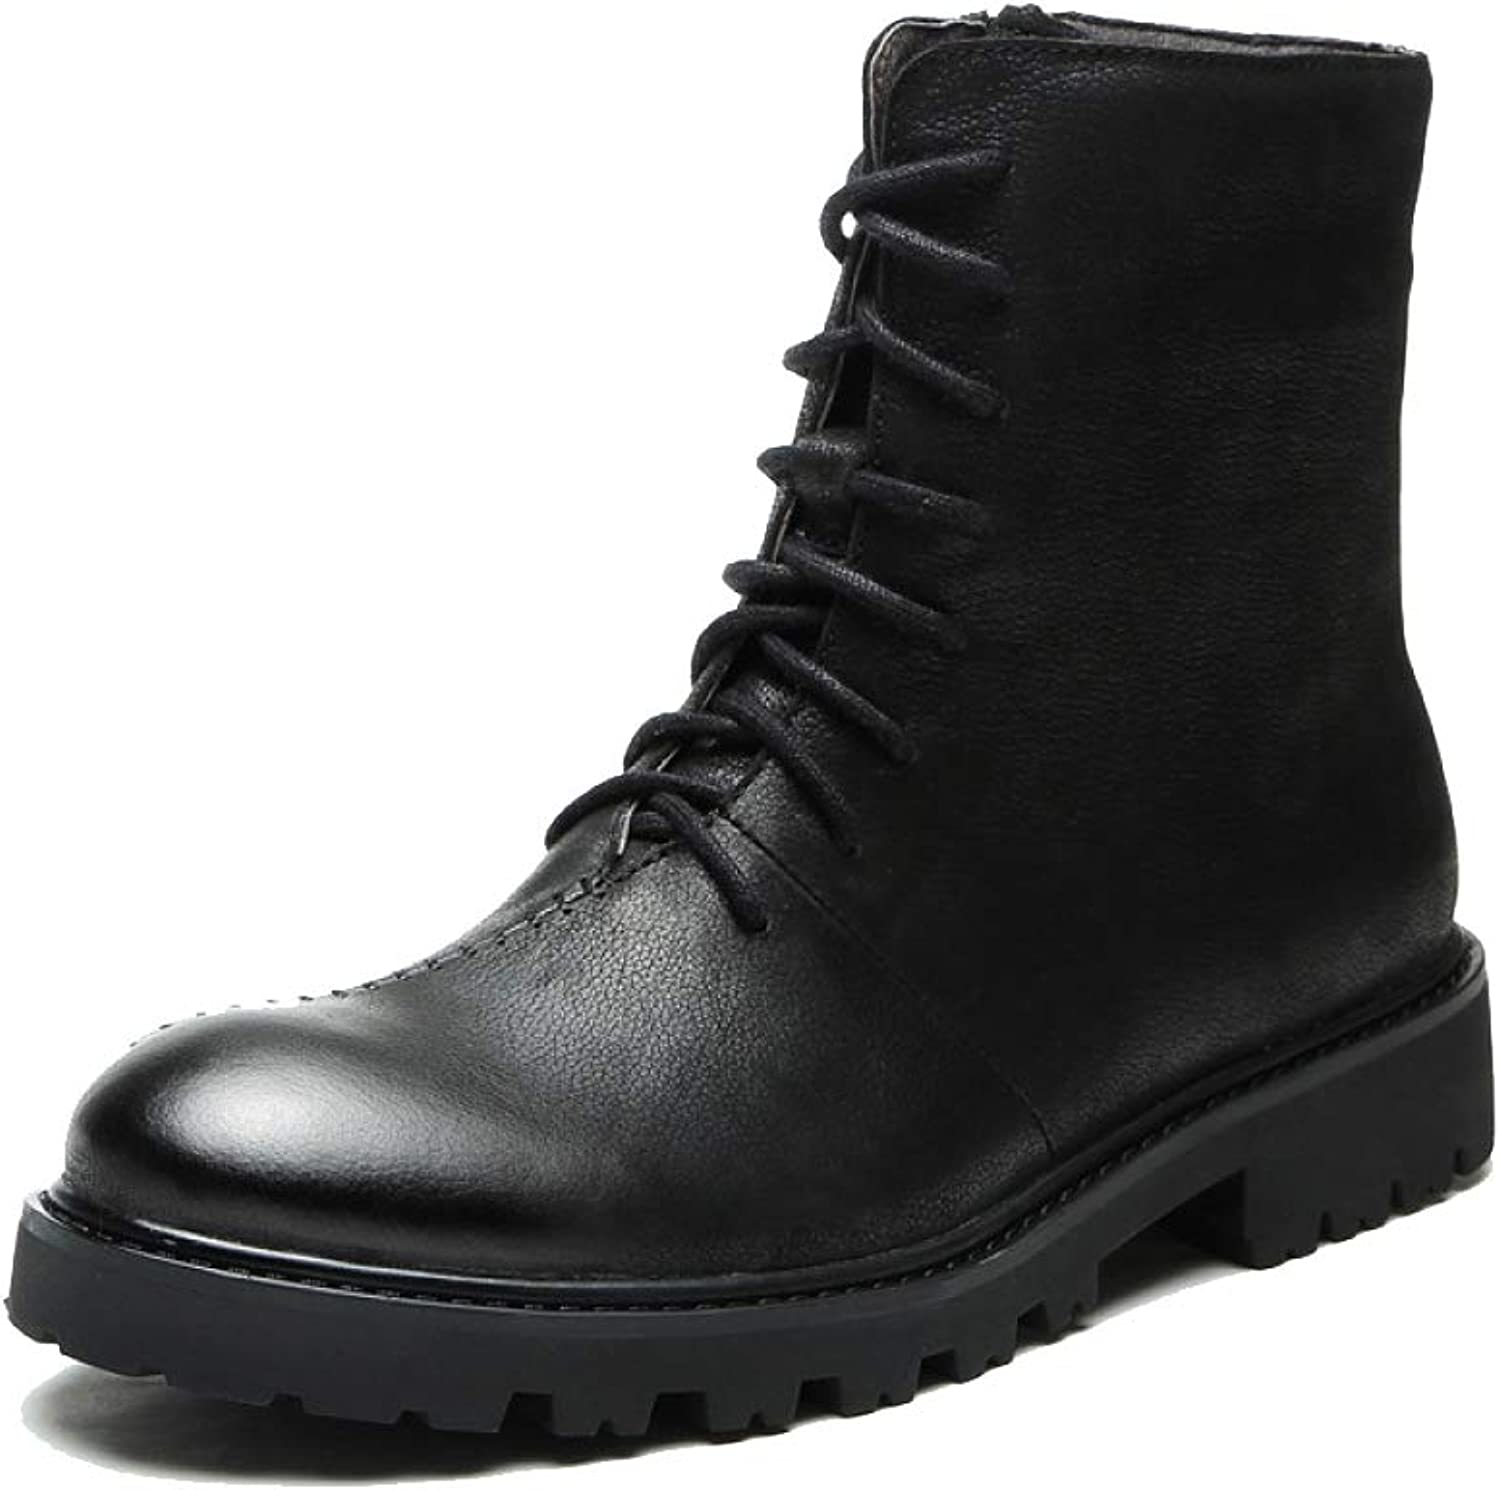 DSFGHE Mens Martin Boots Leather Casual Chelsea Boots Lined Safety Skidproof Ankle Boots